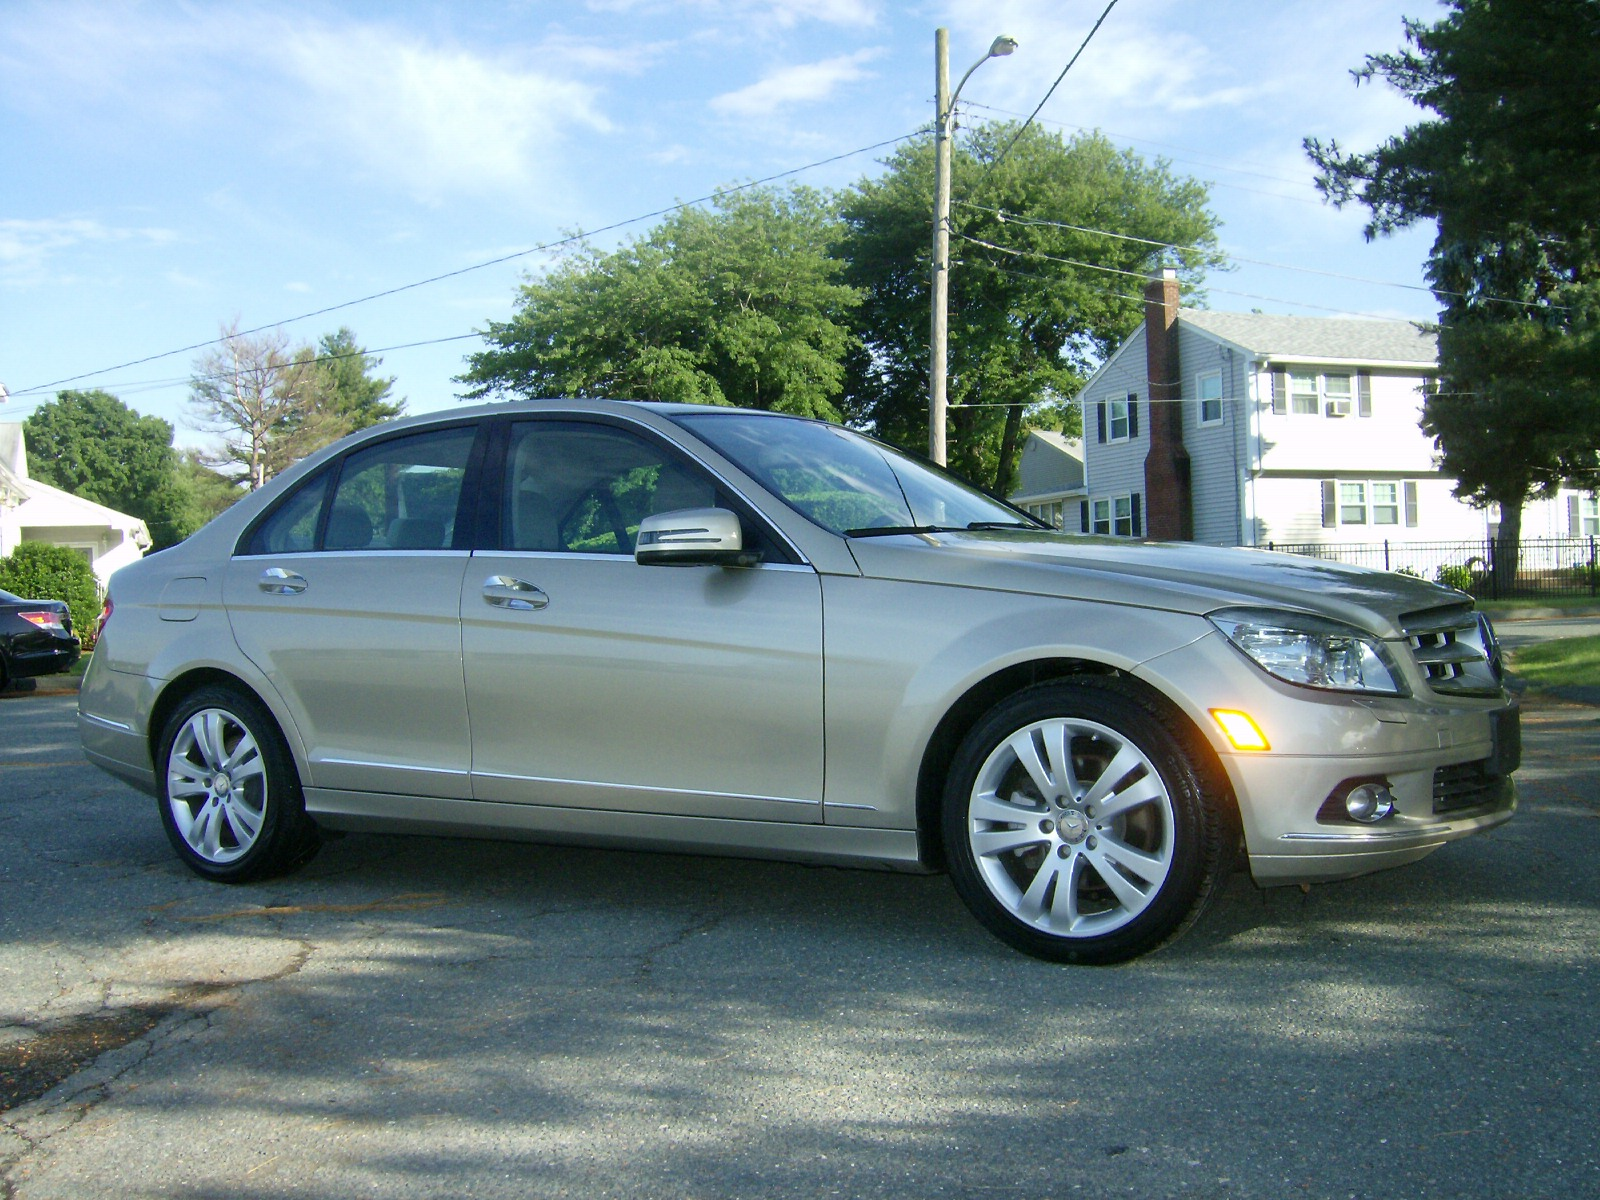 2010 mercedes benz c class pictures cargurus for 2010 mercedes benz c class c300 4matic